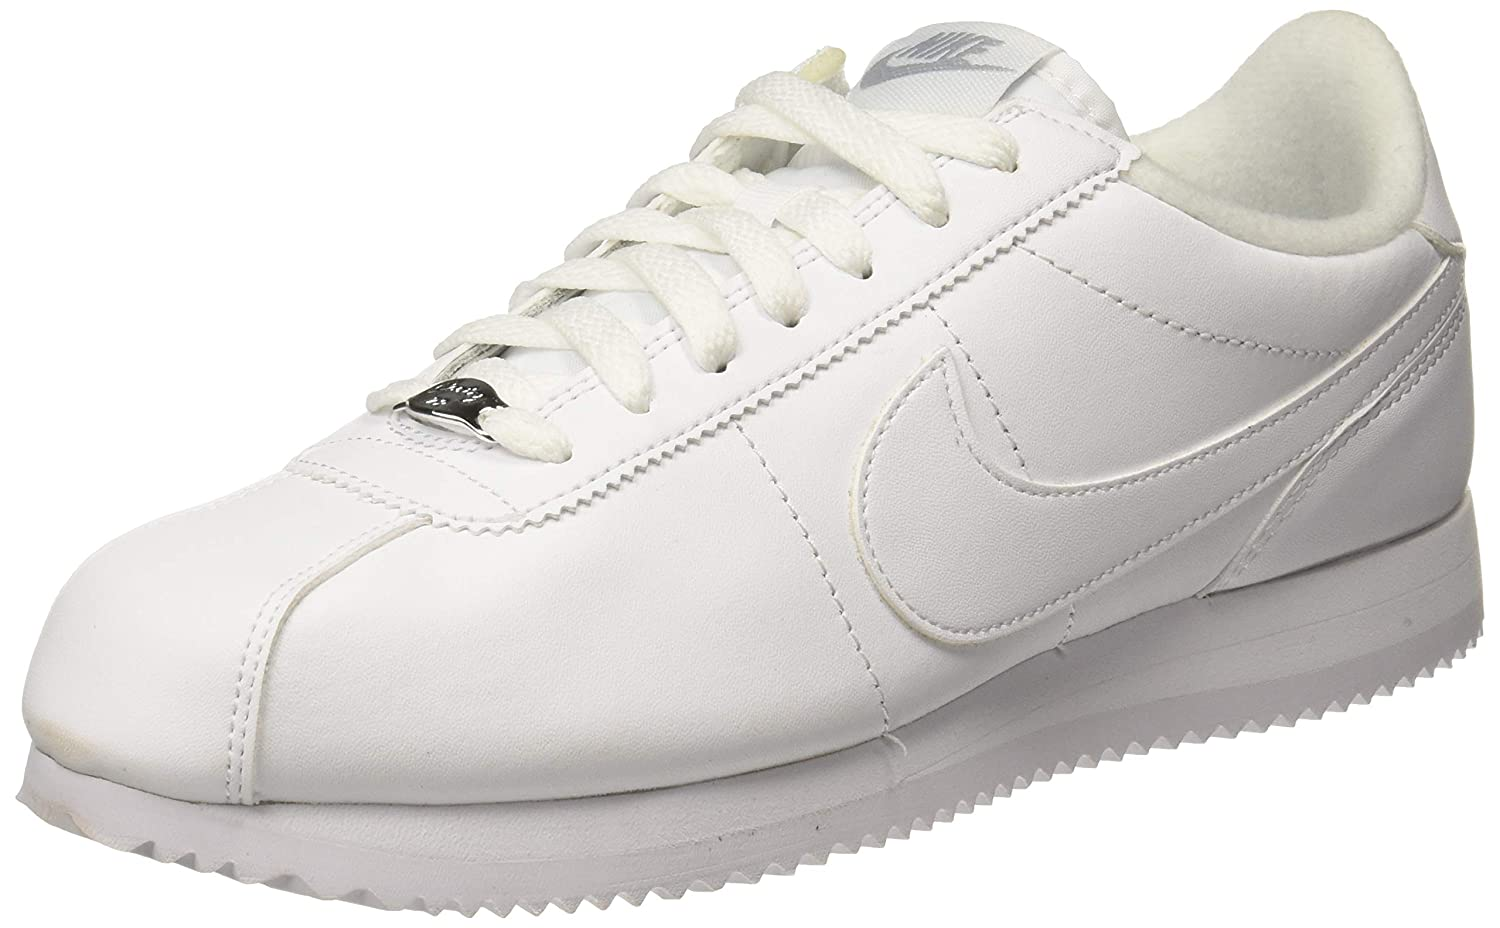 info for 71b7d 47ba9 Nike Men's Cortez Basic Leather Shoe White/Wolf Grey/Metallic Silver Size  14 M US